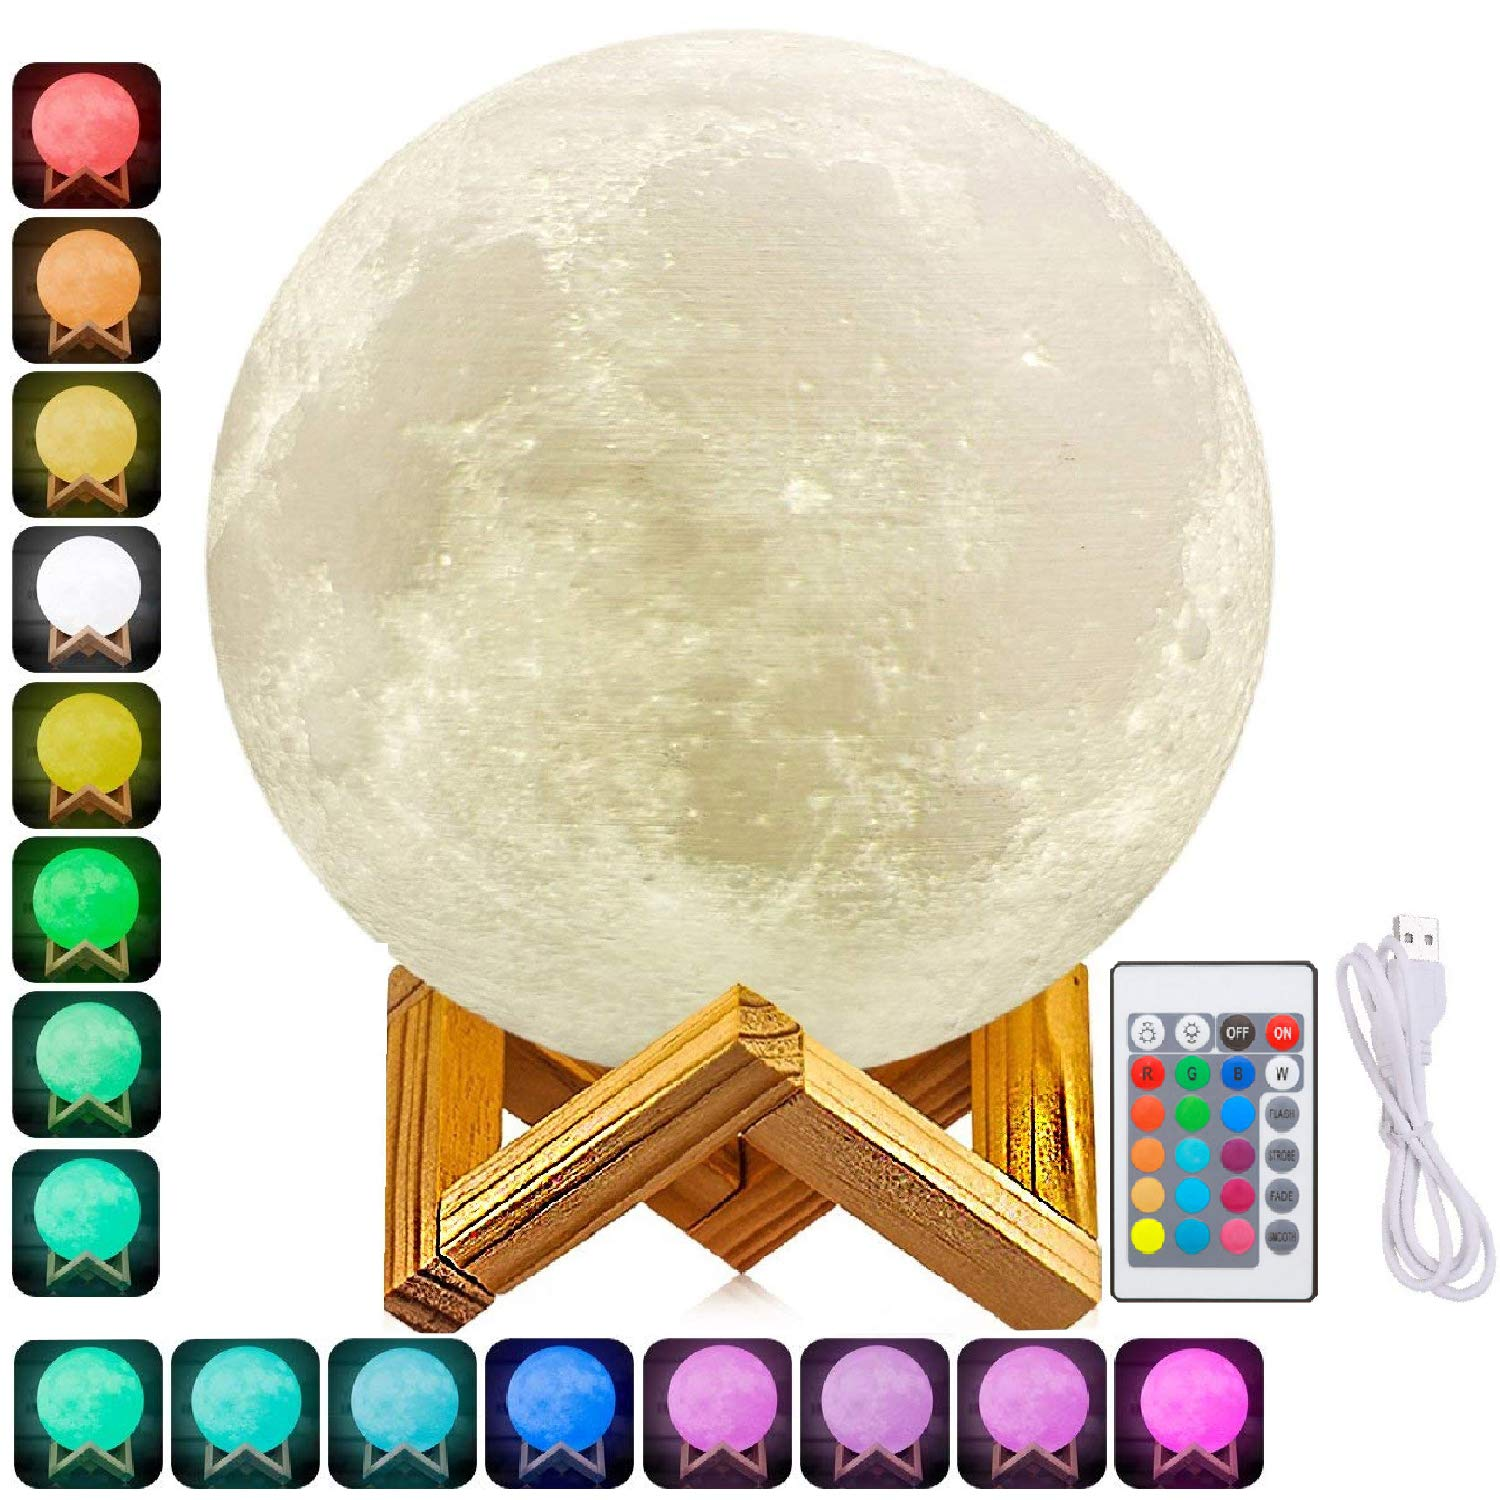 8 Inch Moon Lamp, 3D Printed Moon Light with Stand, The Moon Night Light with LED Warm White 3000K and Warm Yellow 3000K, Touch Control(Diameter20.3CM) Touch Control(Diameter20.3CM) zhong guang mei da EML-08